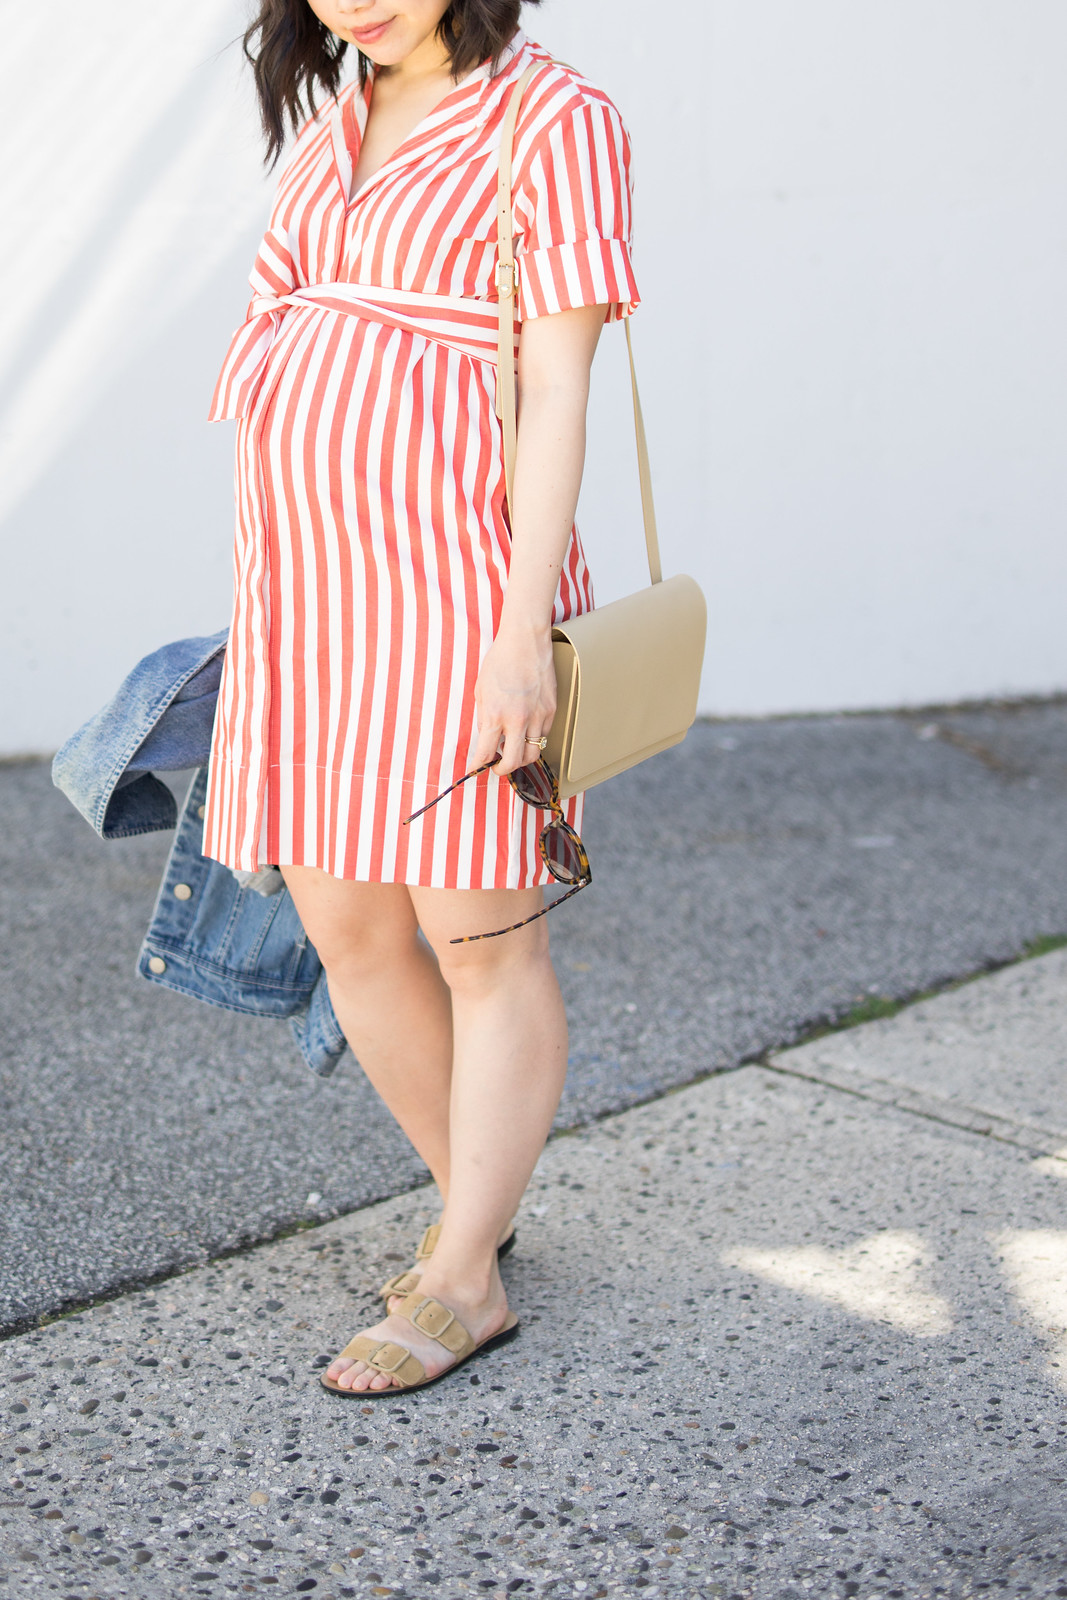 everlane striped shirt dress